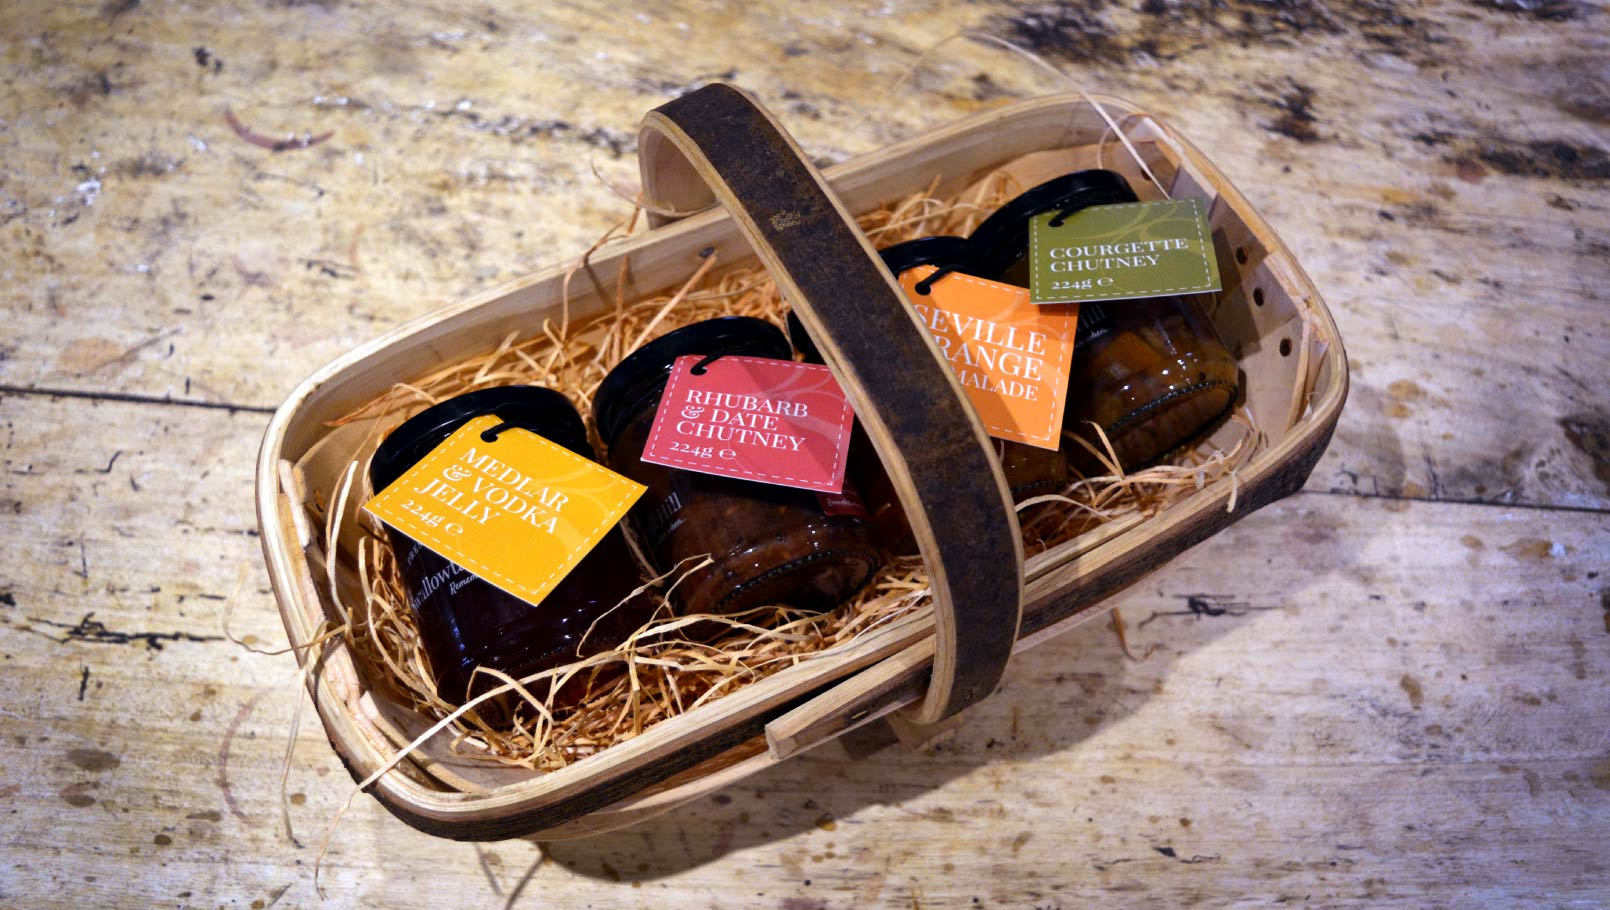 Swallowtail Hill Preserves branding and label design in basket.